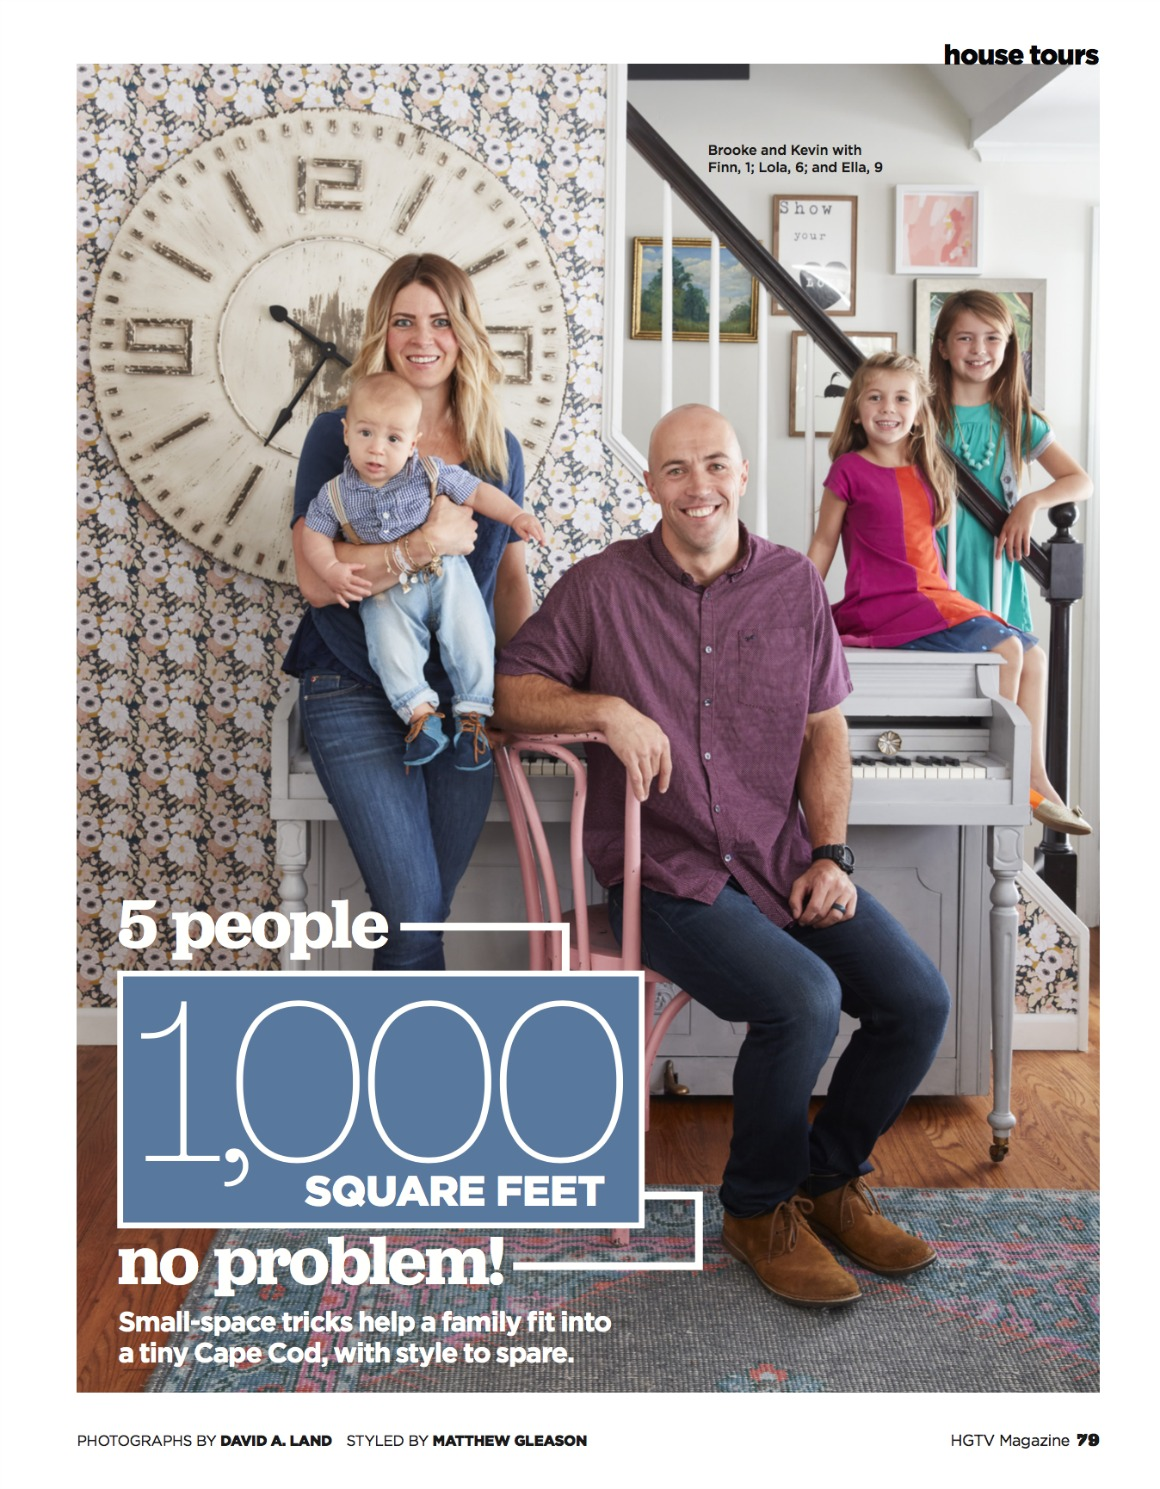 1100 Square Feet HGTV Magazine Feature- Then and NOW!